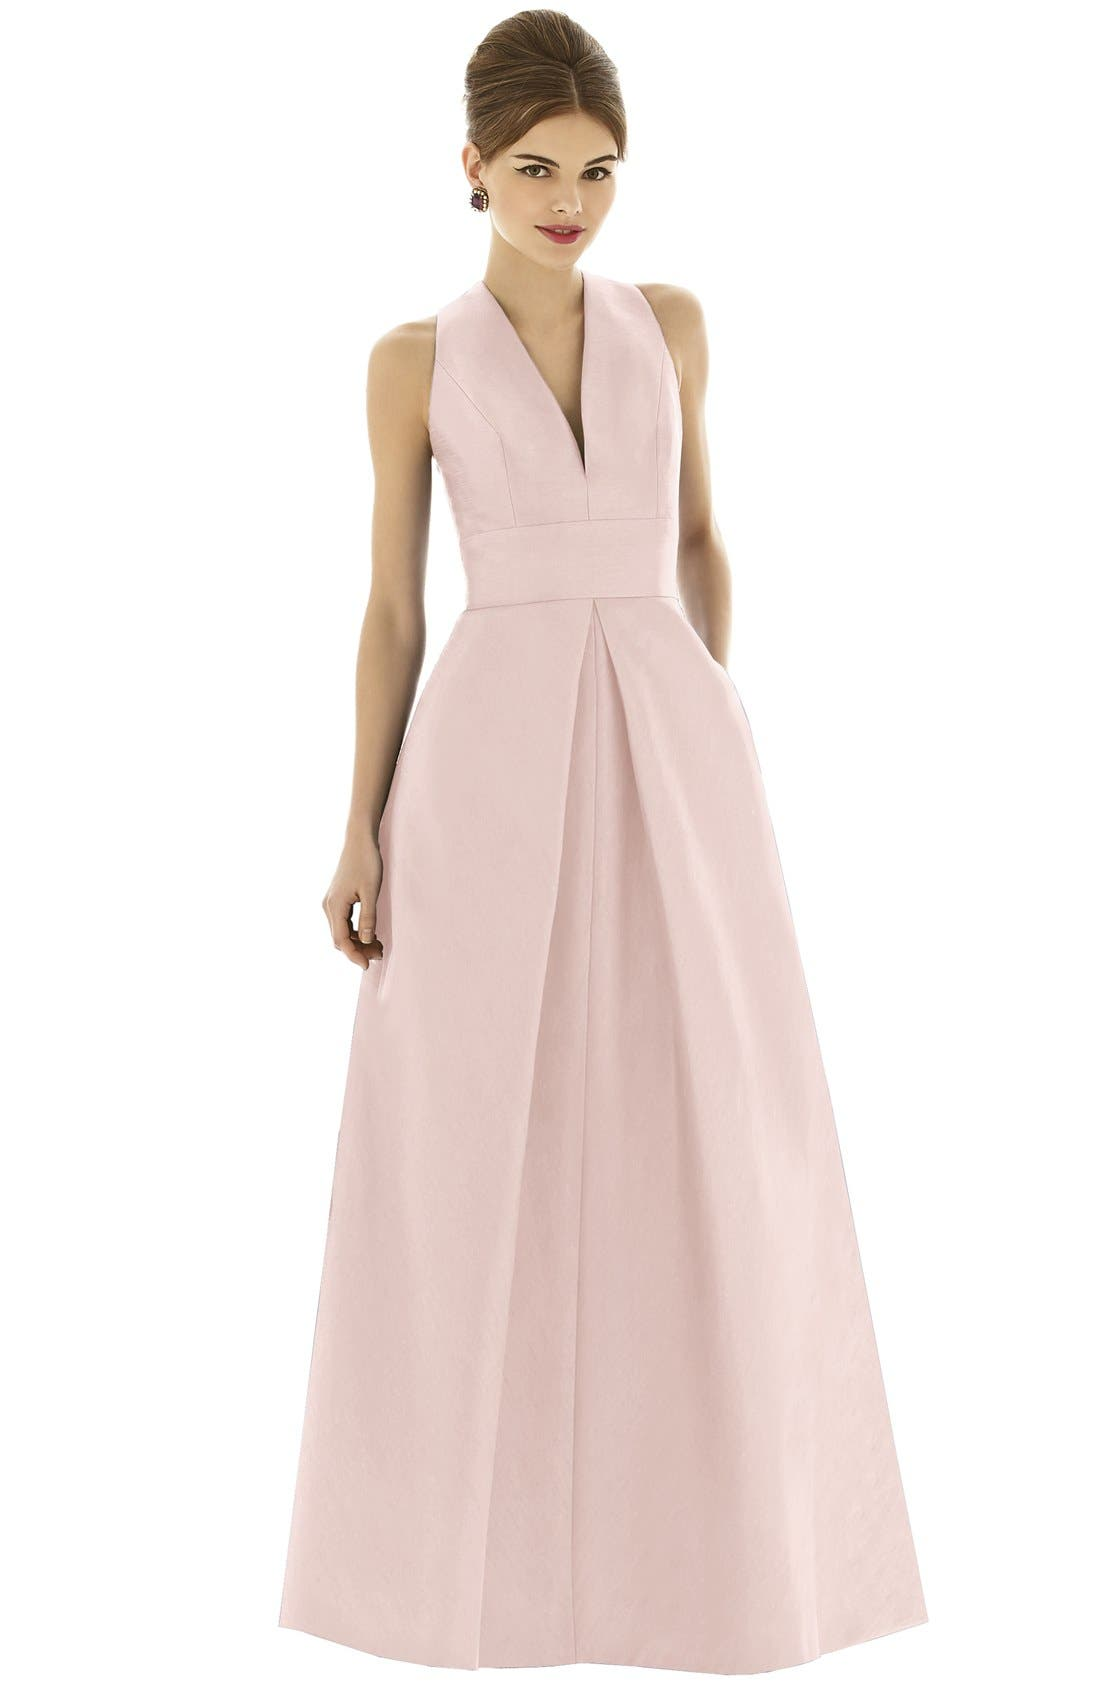 Alfred sung bridesmaid wedding party dresses nordstrom ombrellifo Choice Image